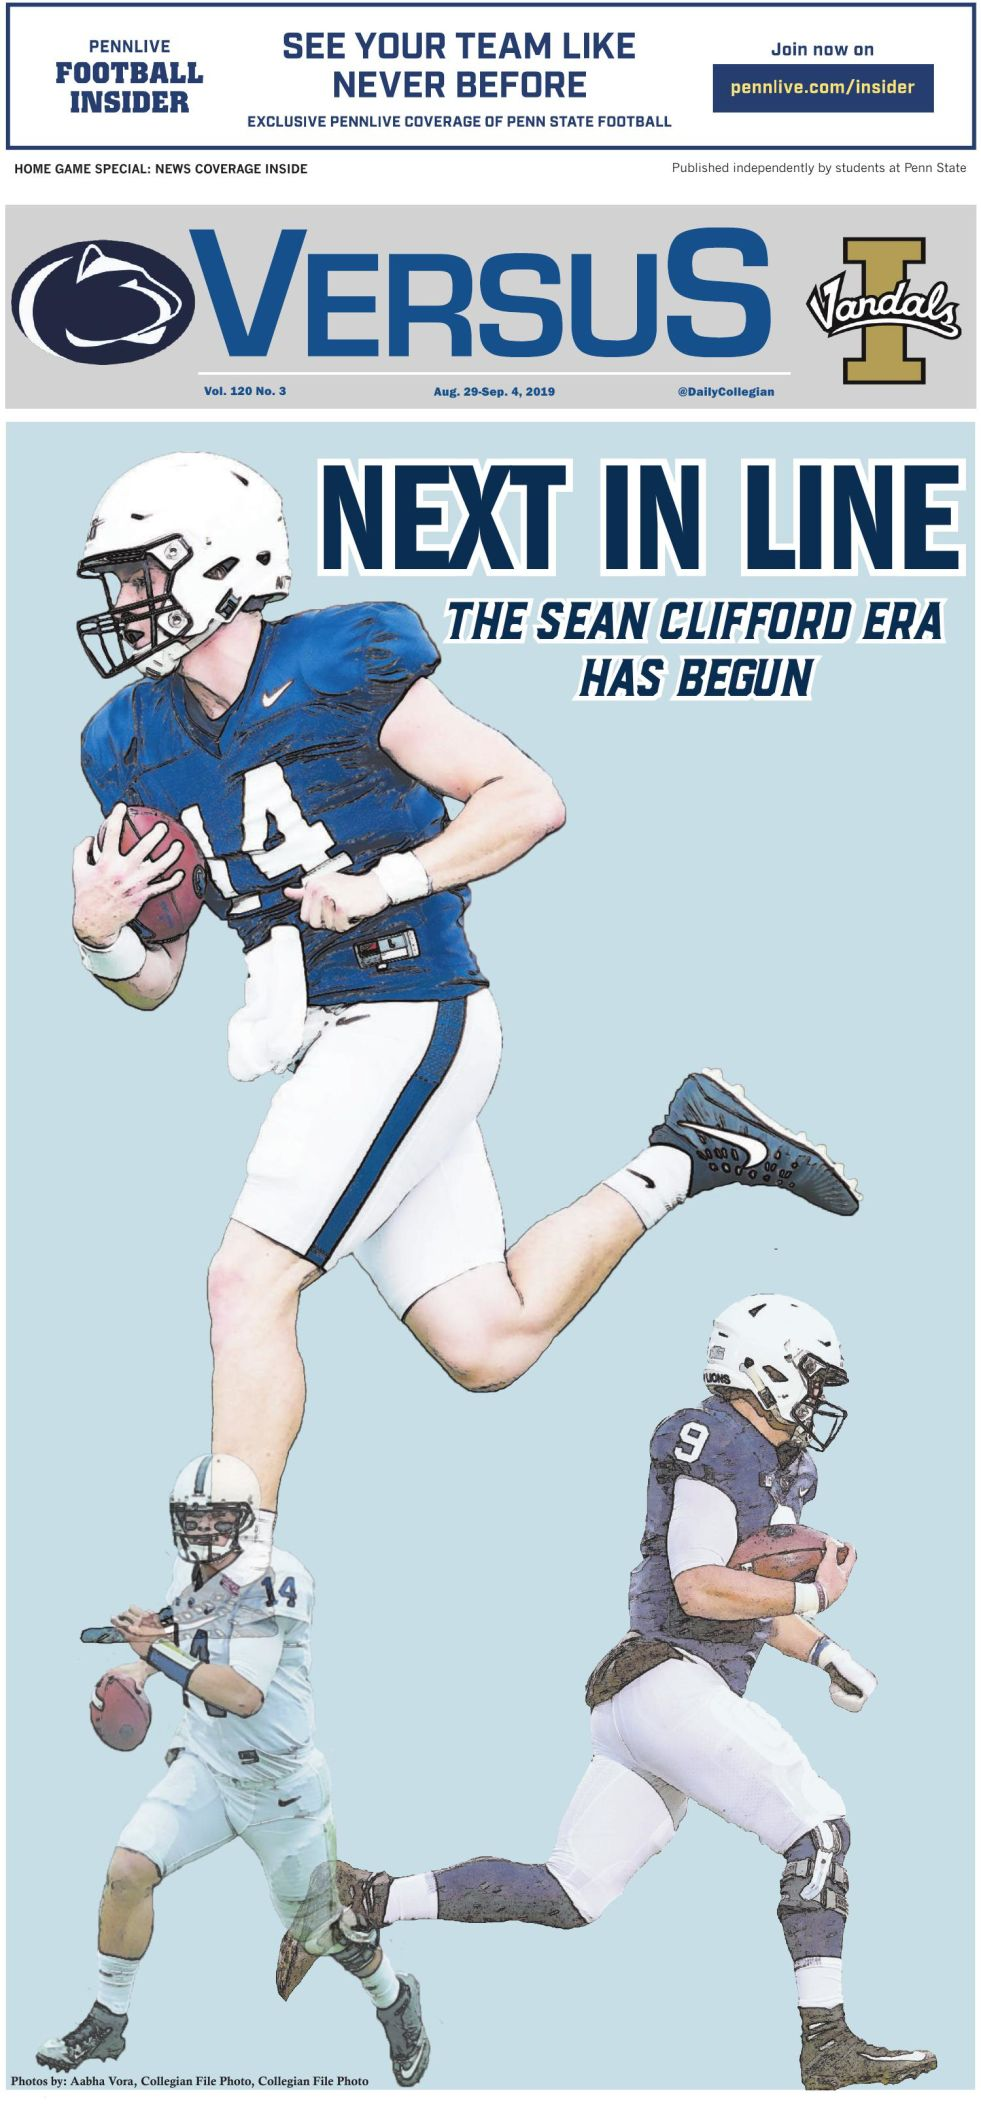 The Daily Collegian for Aug. 29, 2019